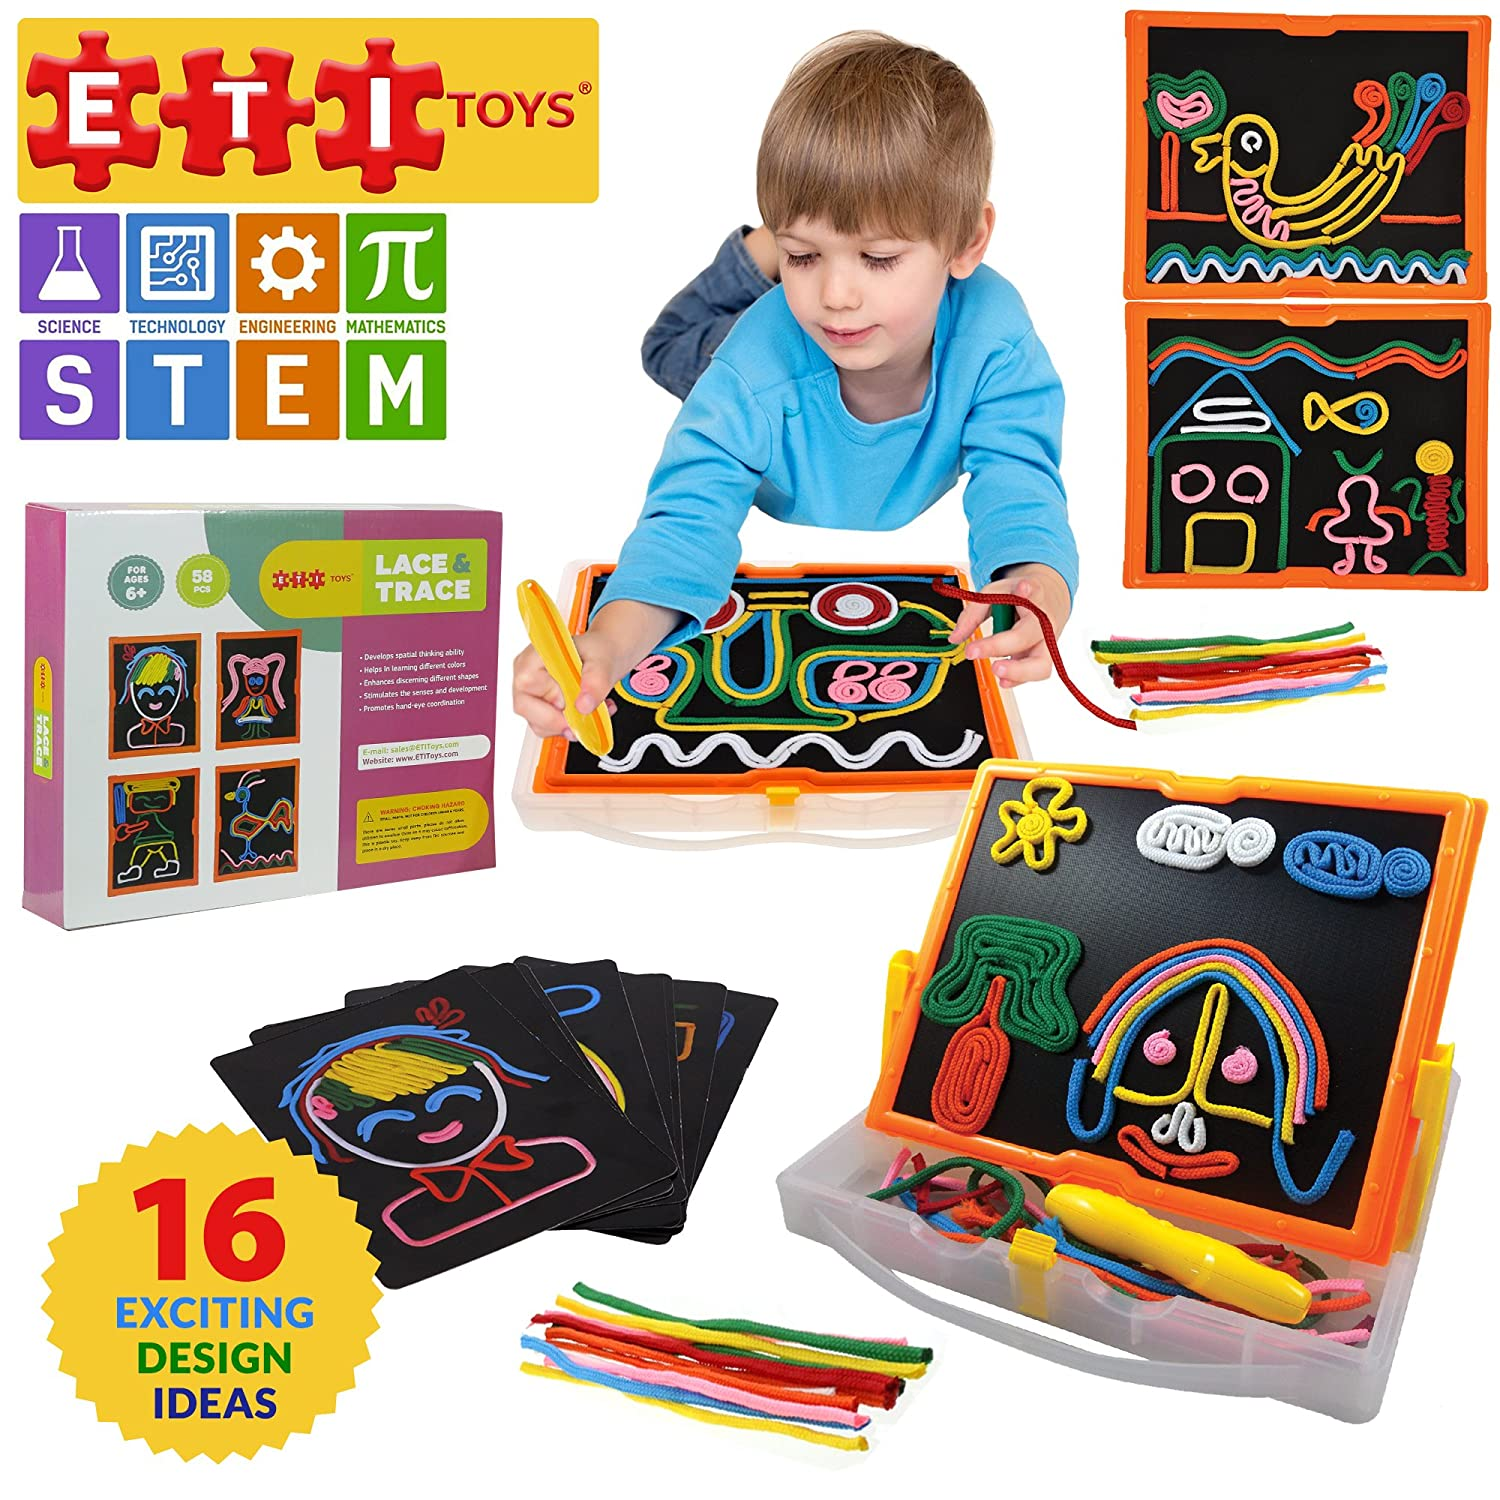 Amazon ETI Toys Lace and Trace with Board for Boys and